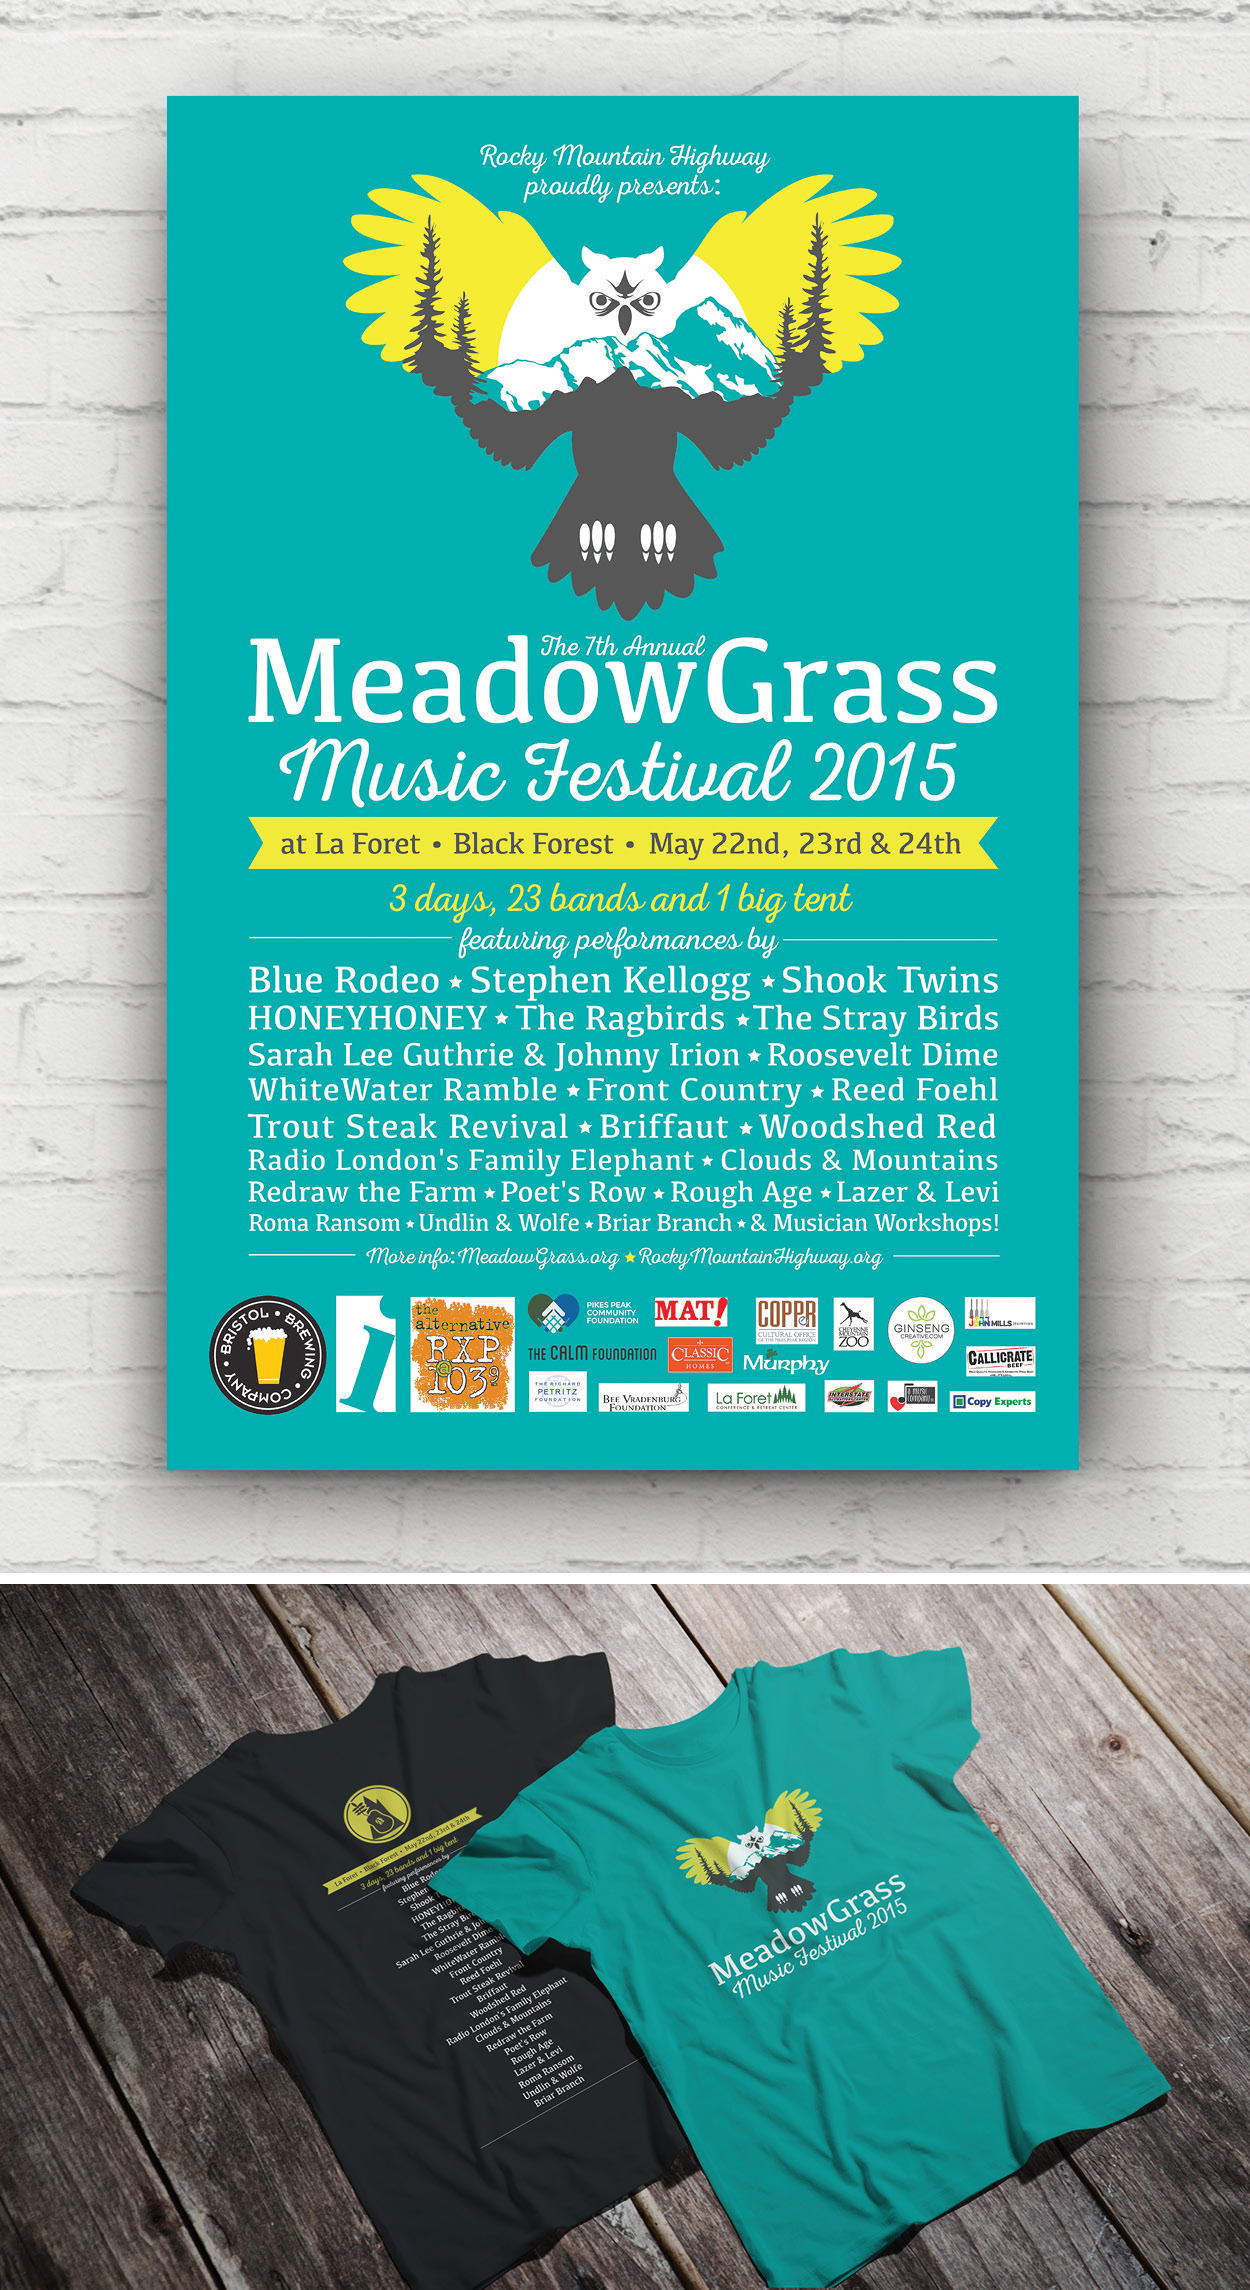 MEADOWGRASS MUSIC FESTIVAL 2015